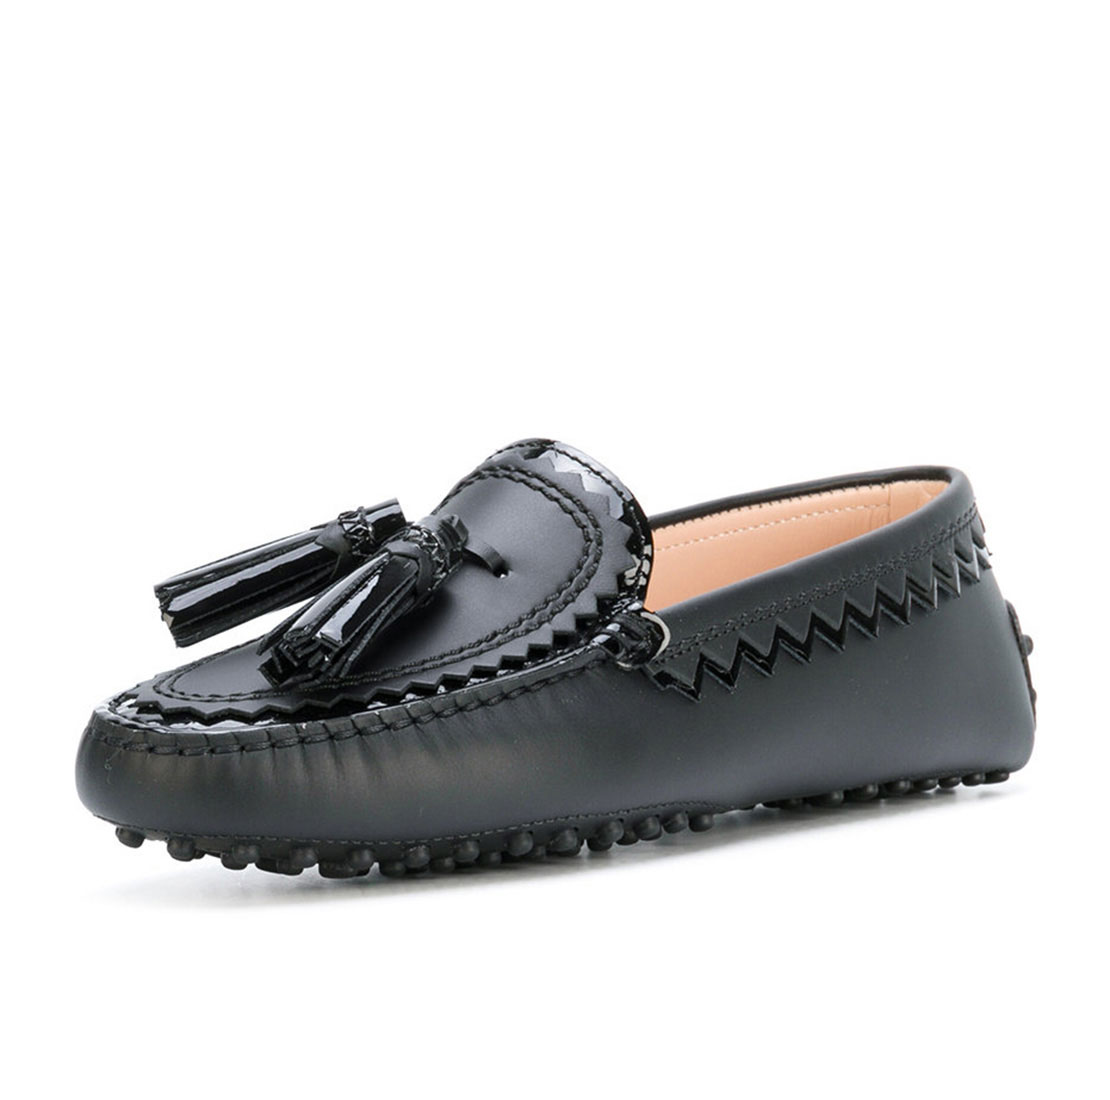 Genuine leather black comfortable tassels ladies moccasin gommino shoes YB4021